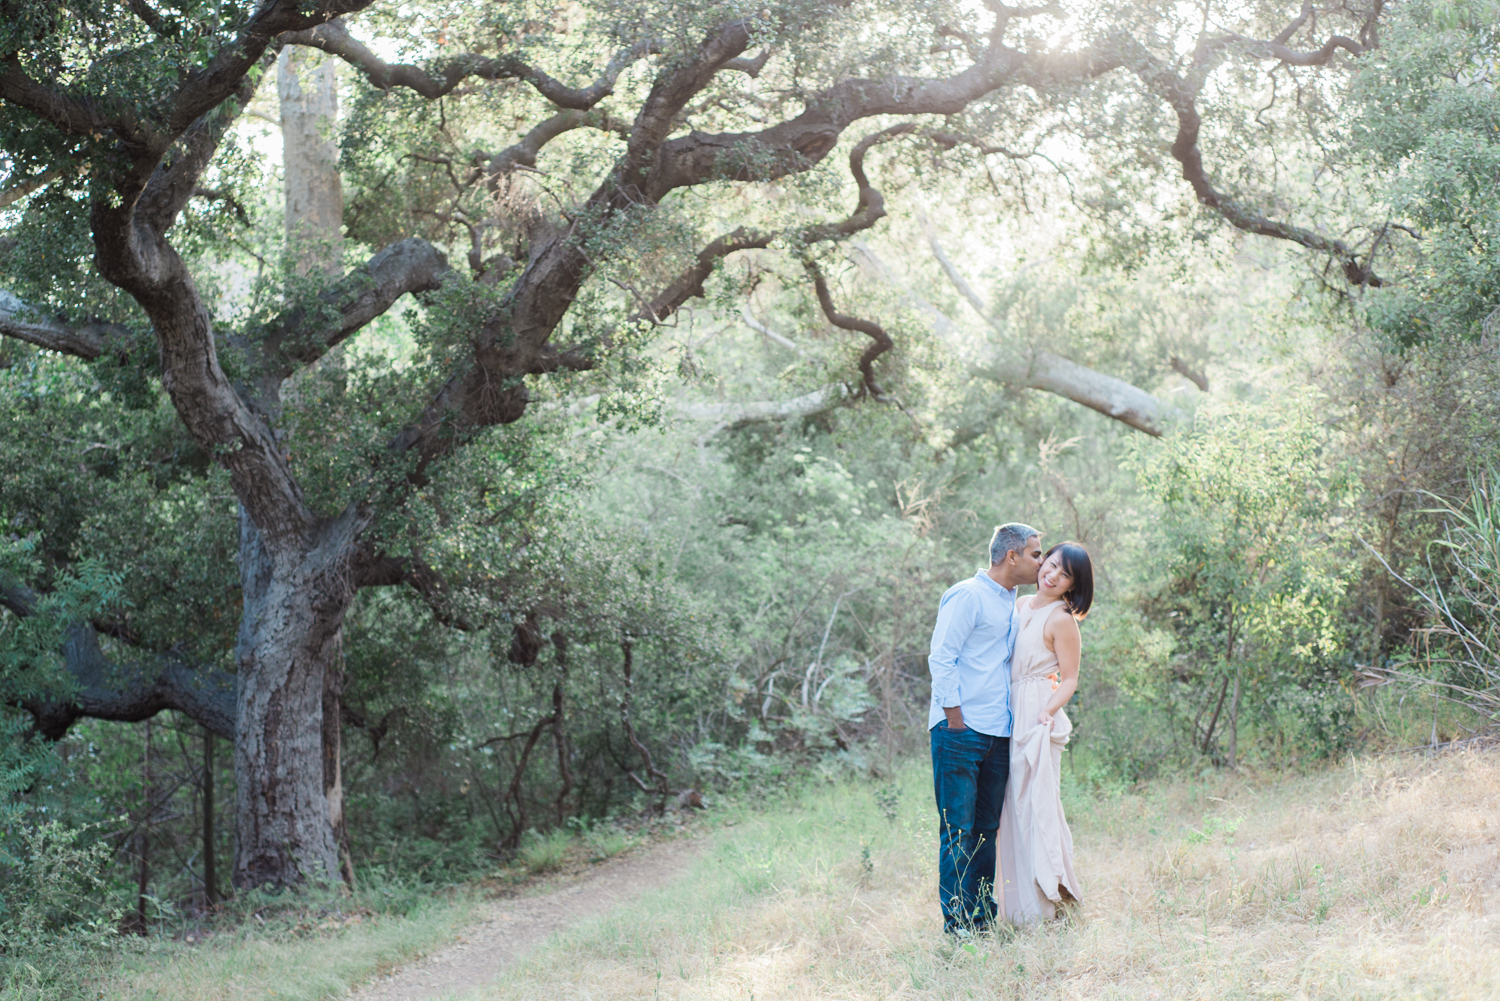 tina&sahil_solstice_canyon_engagement_session_photography_los_angeles_wedding_photographer-2.jpg